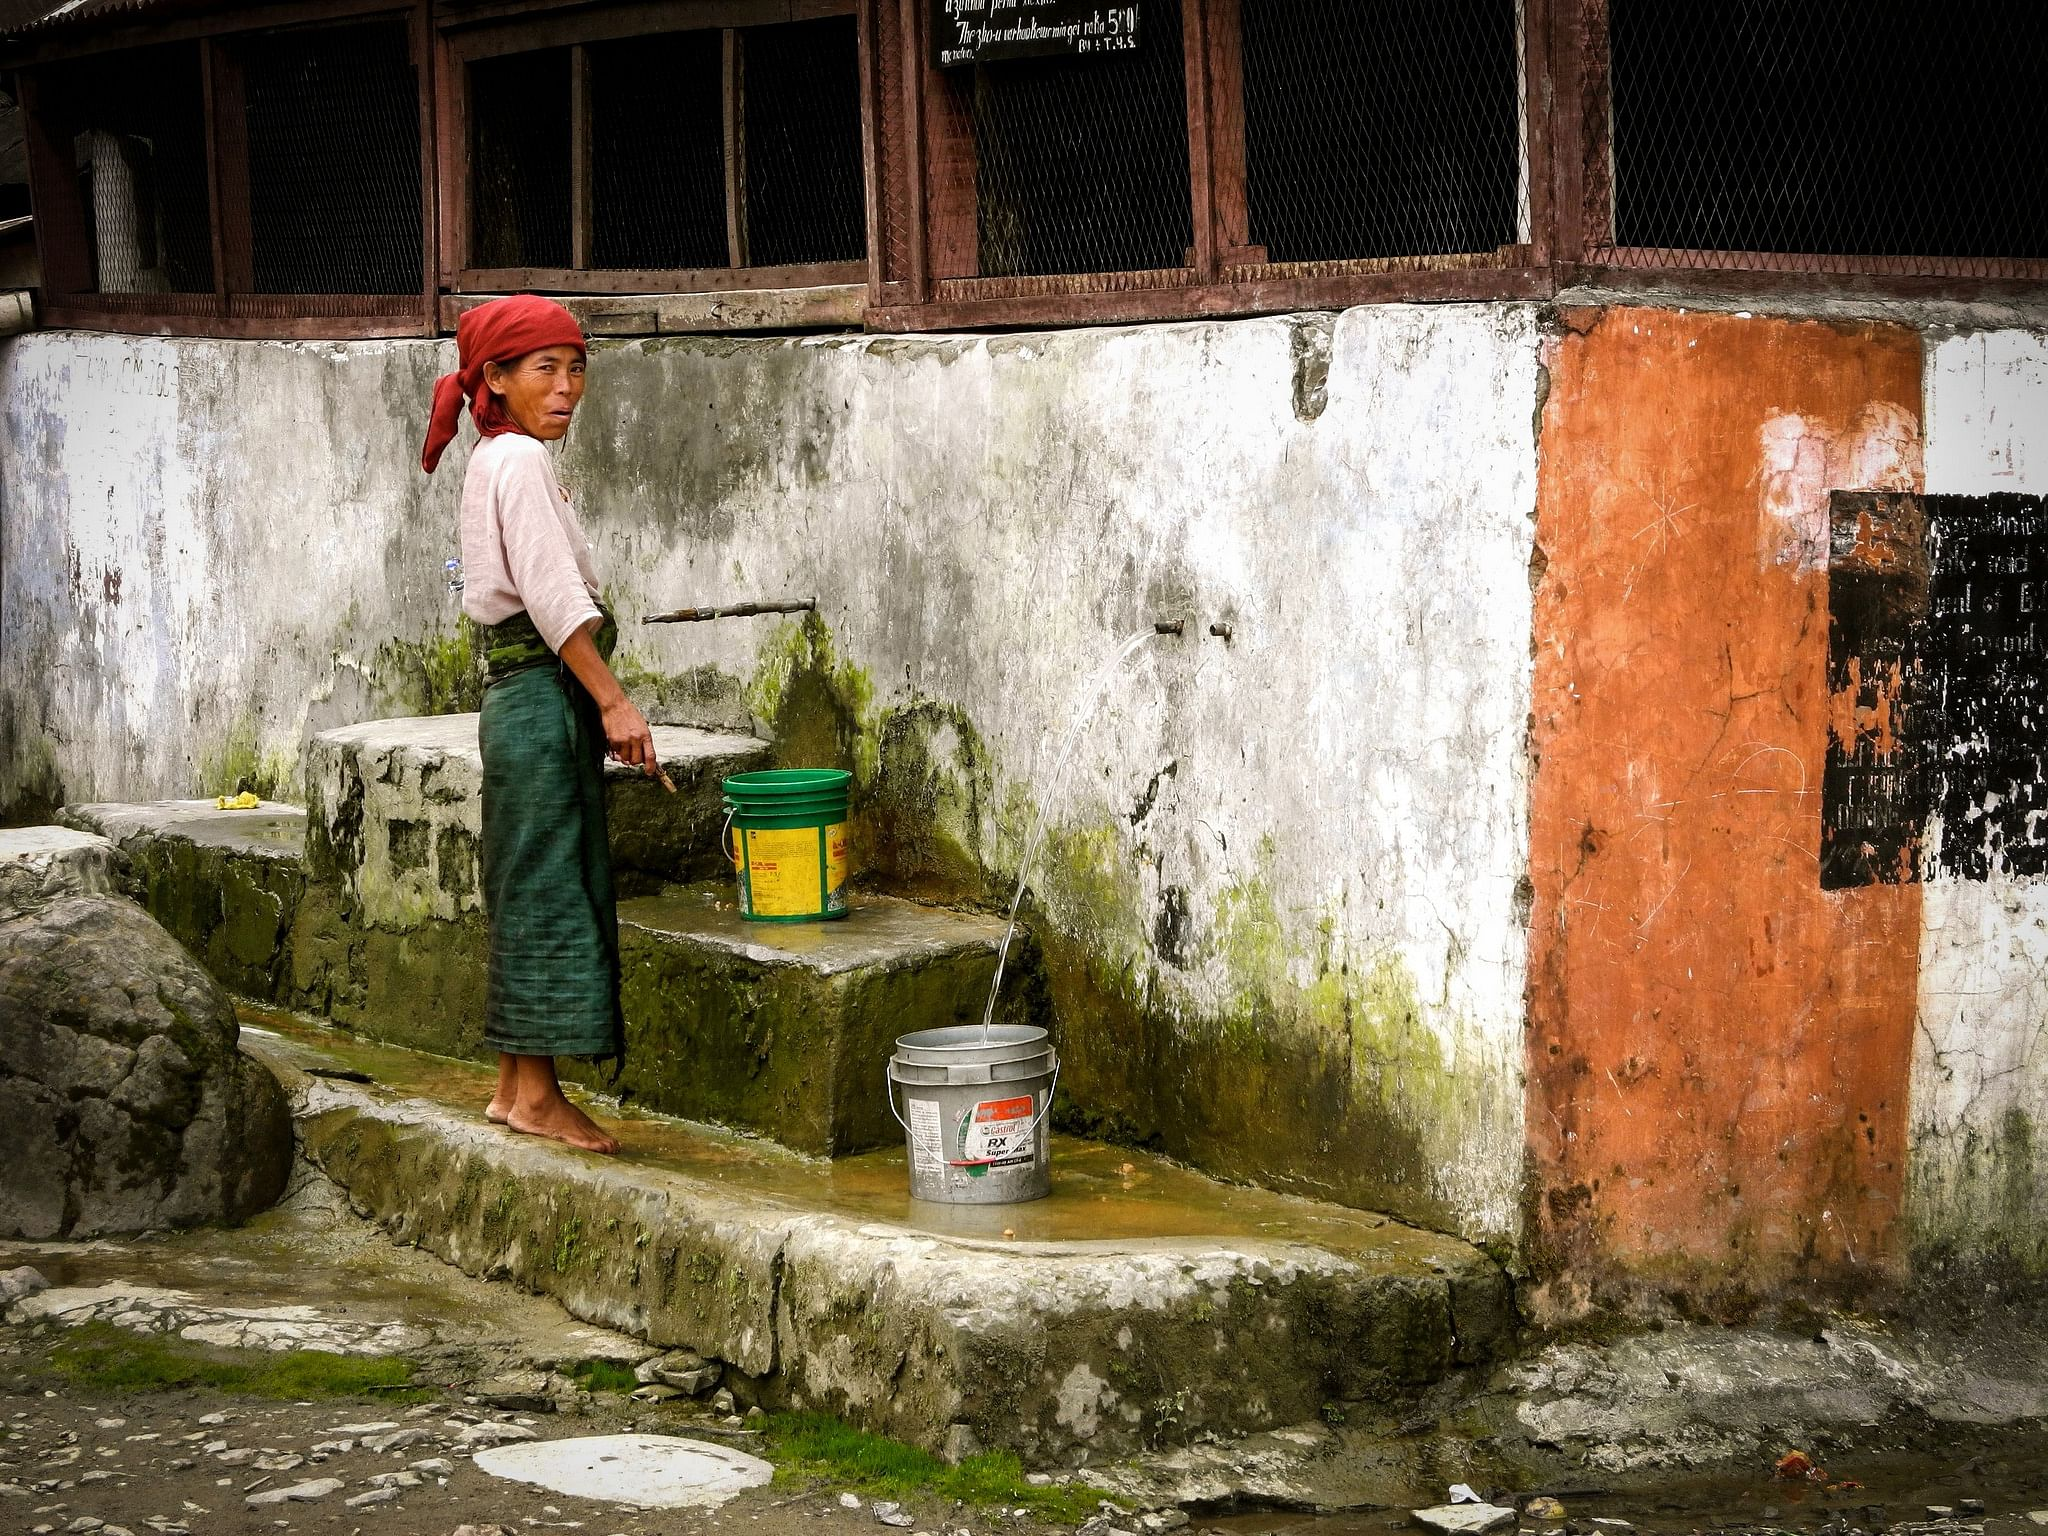 VIDEO: How Villagers In A Naga Village Built A Beautiful, Equitable Water Management System